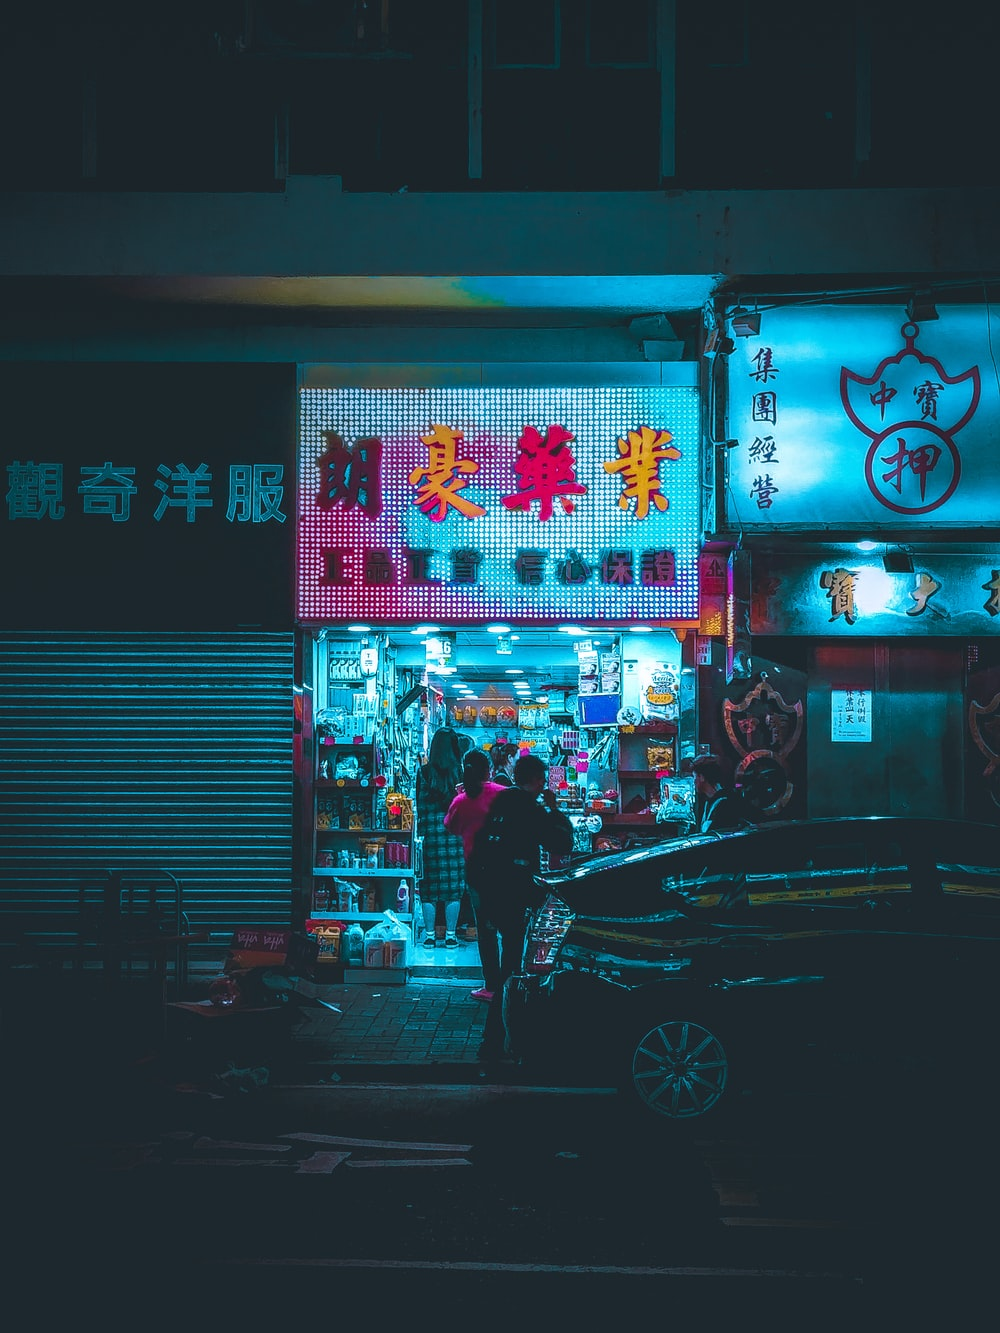 two person standing near storefront during nighttime